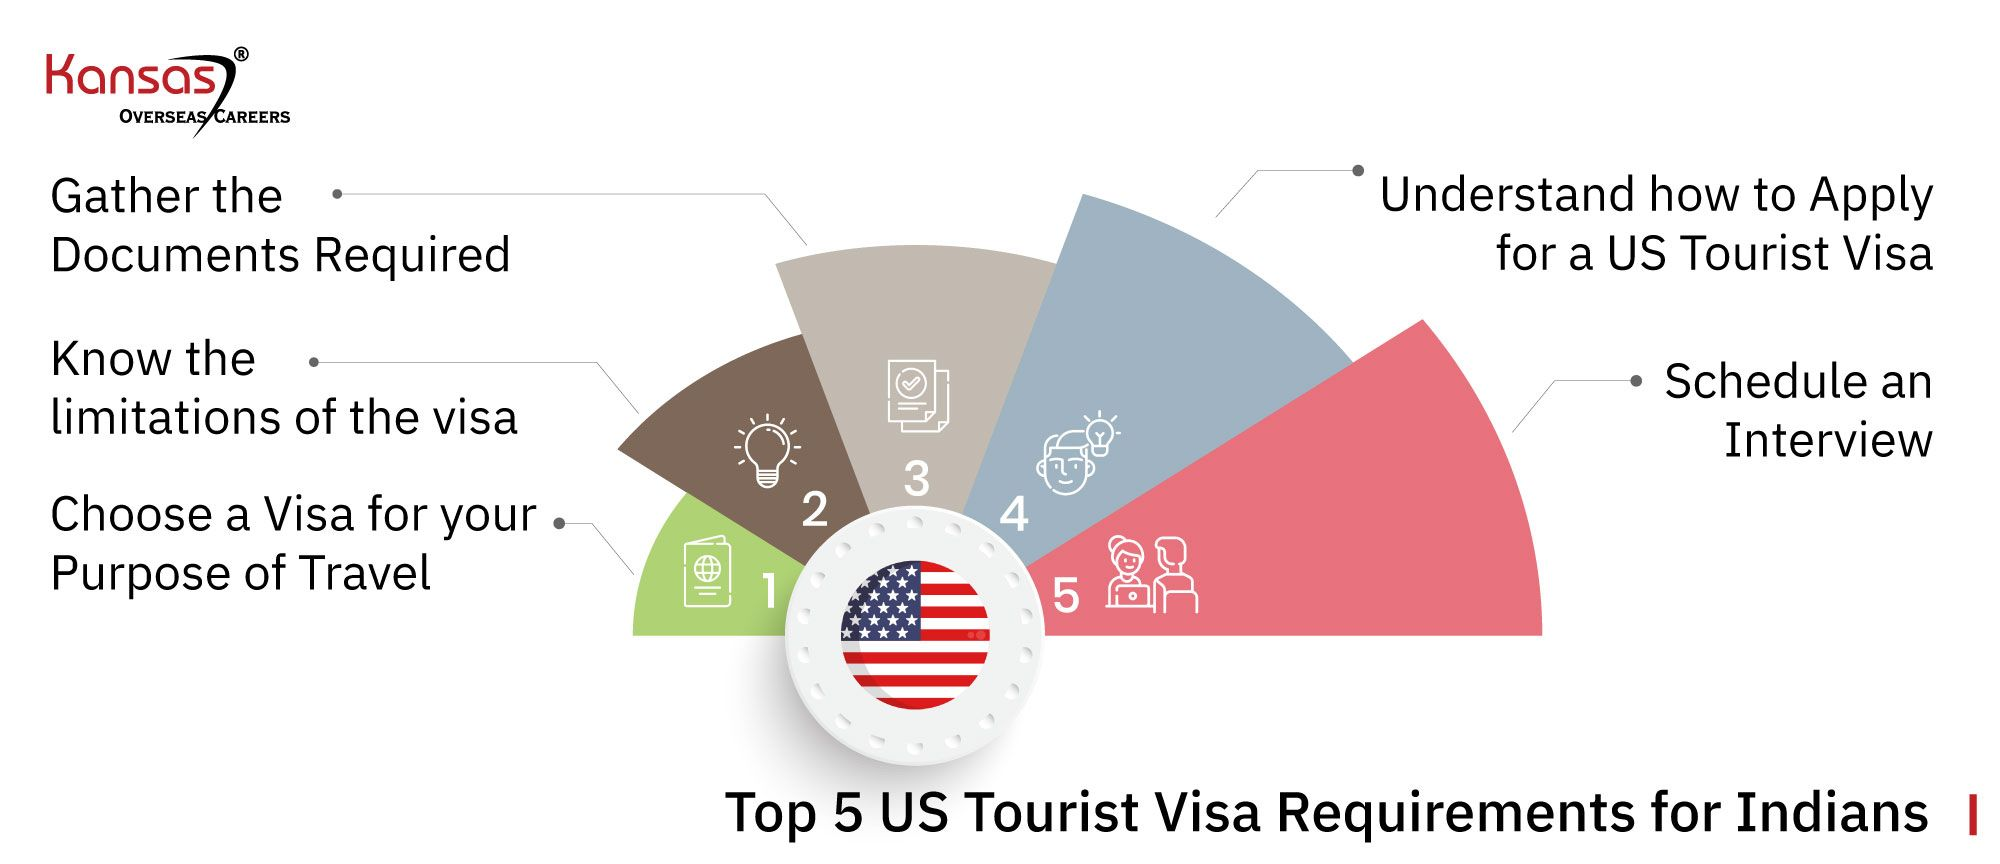 Top-5-US-Tourist-Visa-Requirements-for-Indians